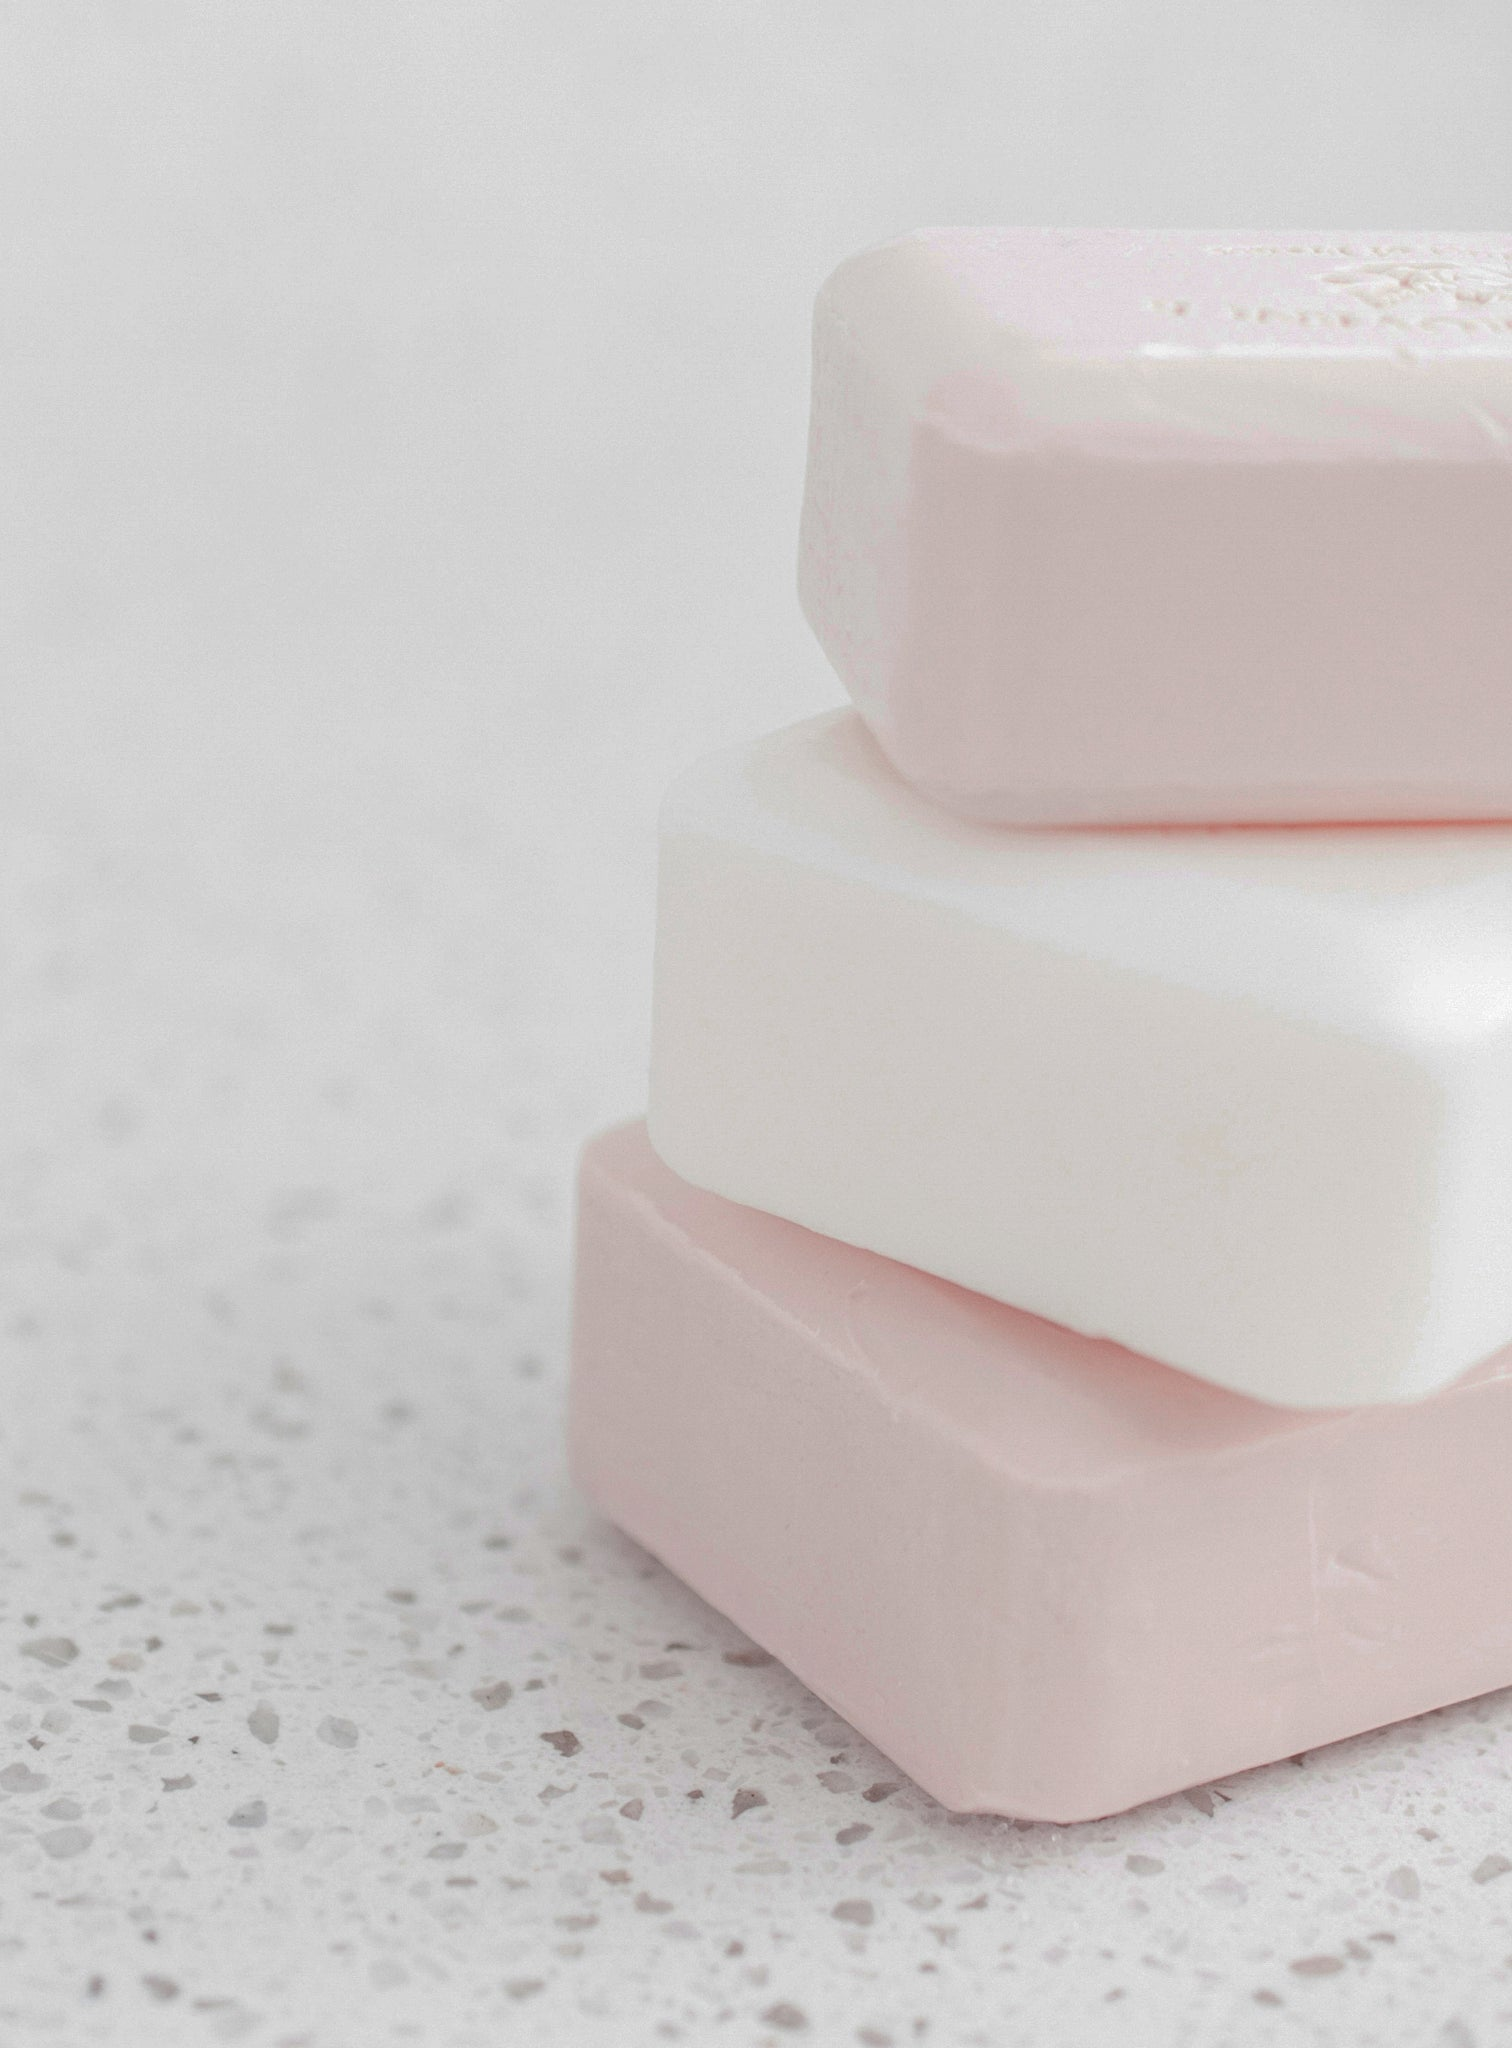 6 Creative Hobbies - Soap Making - Pretty Collected